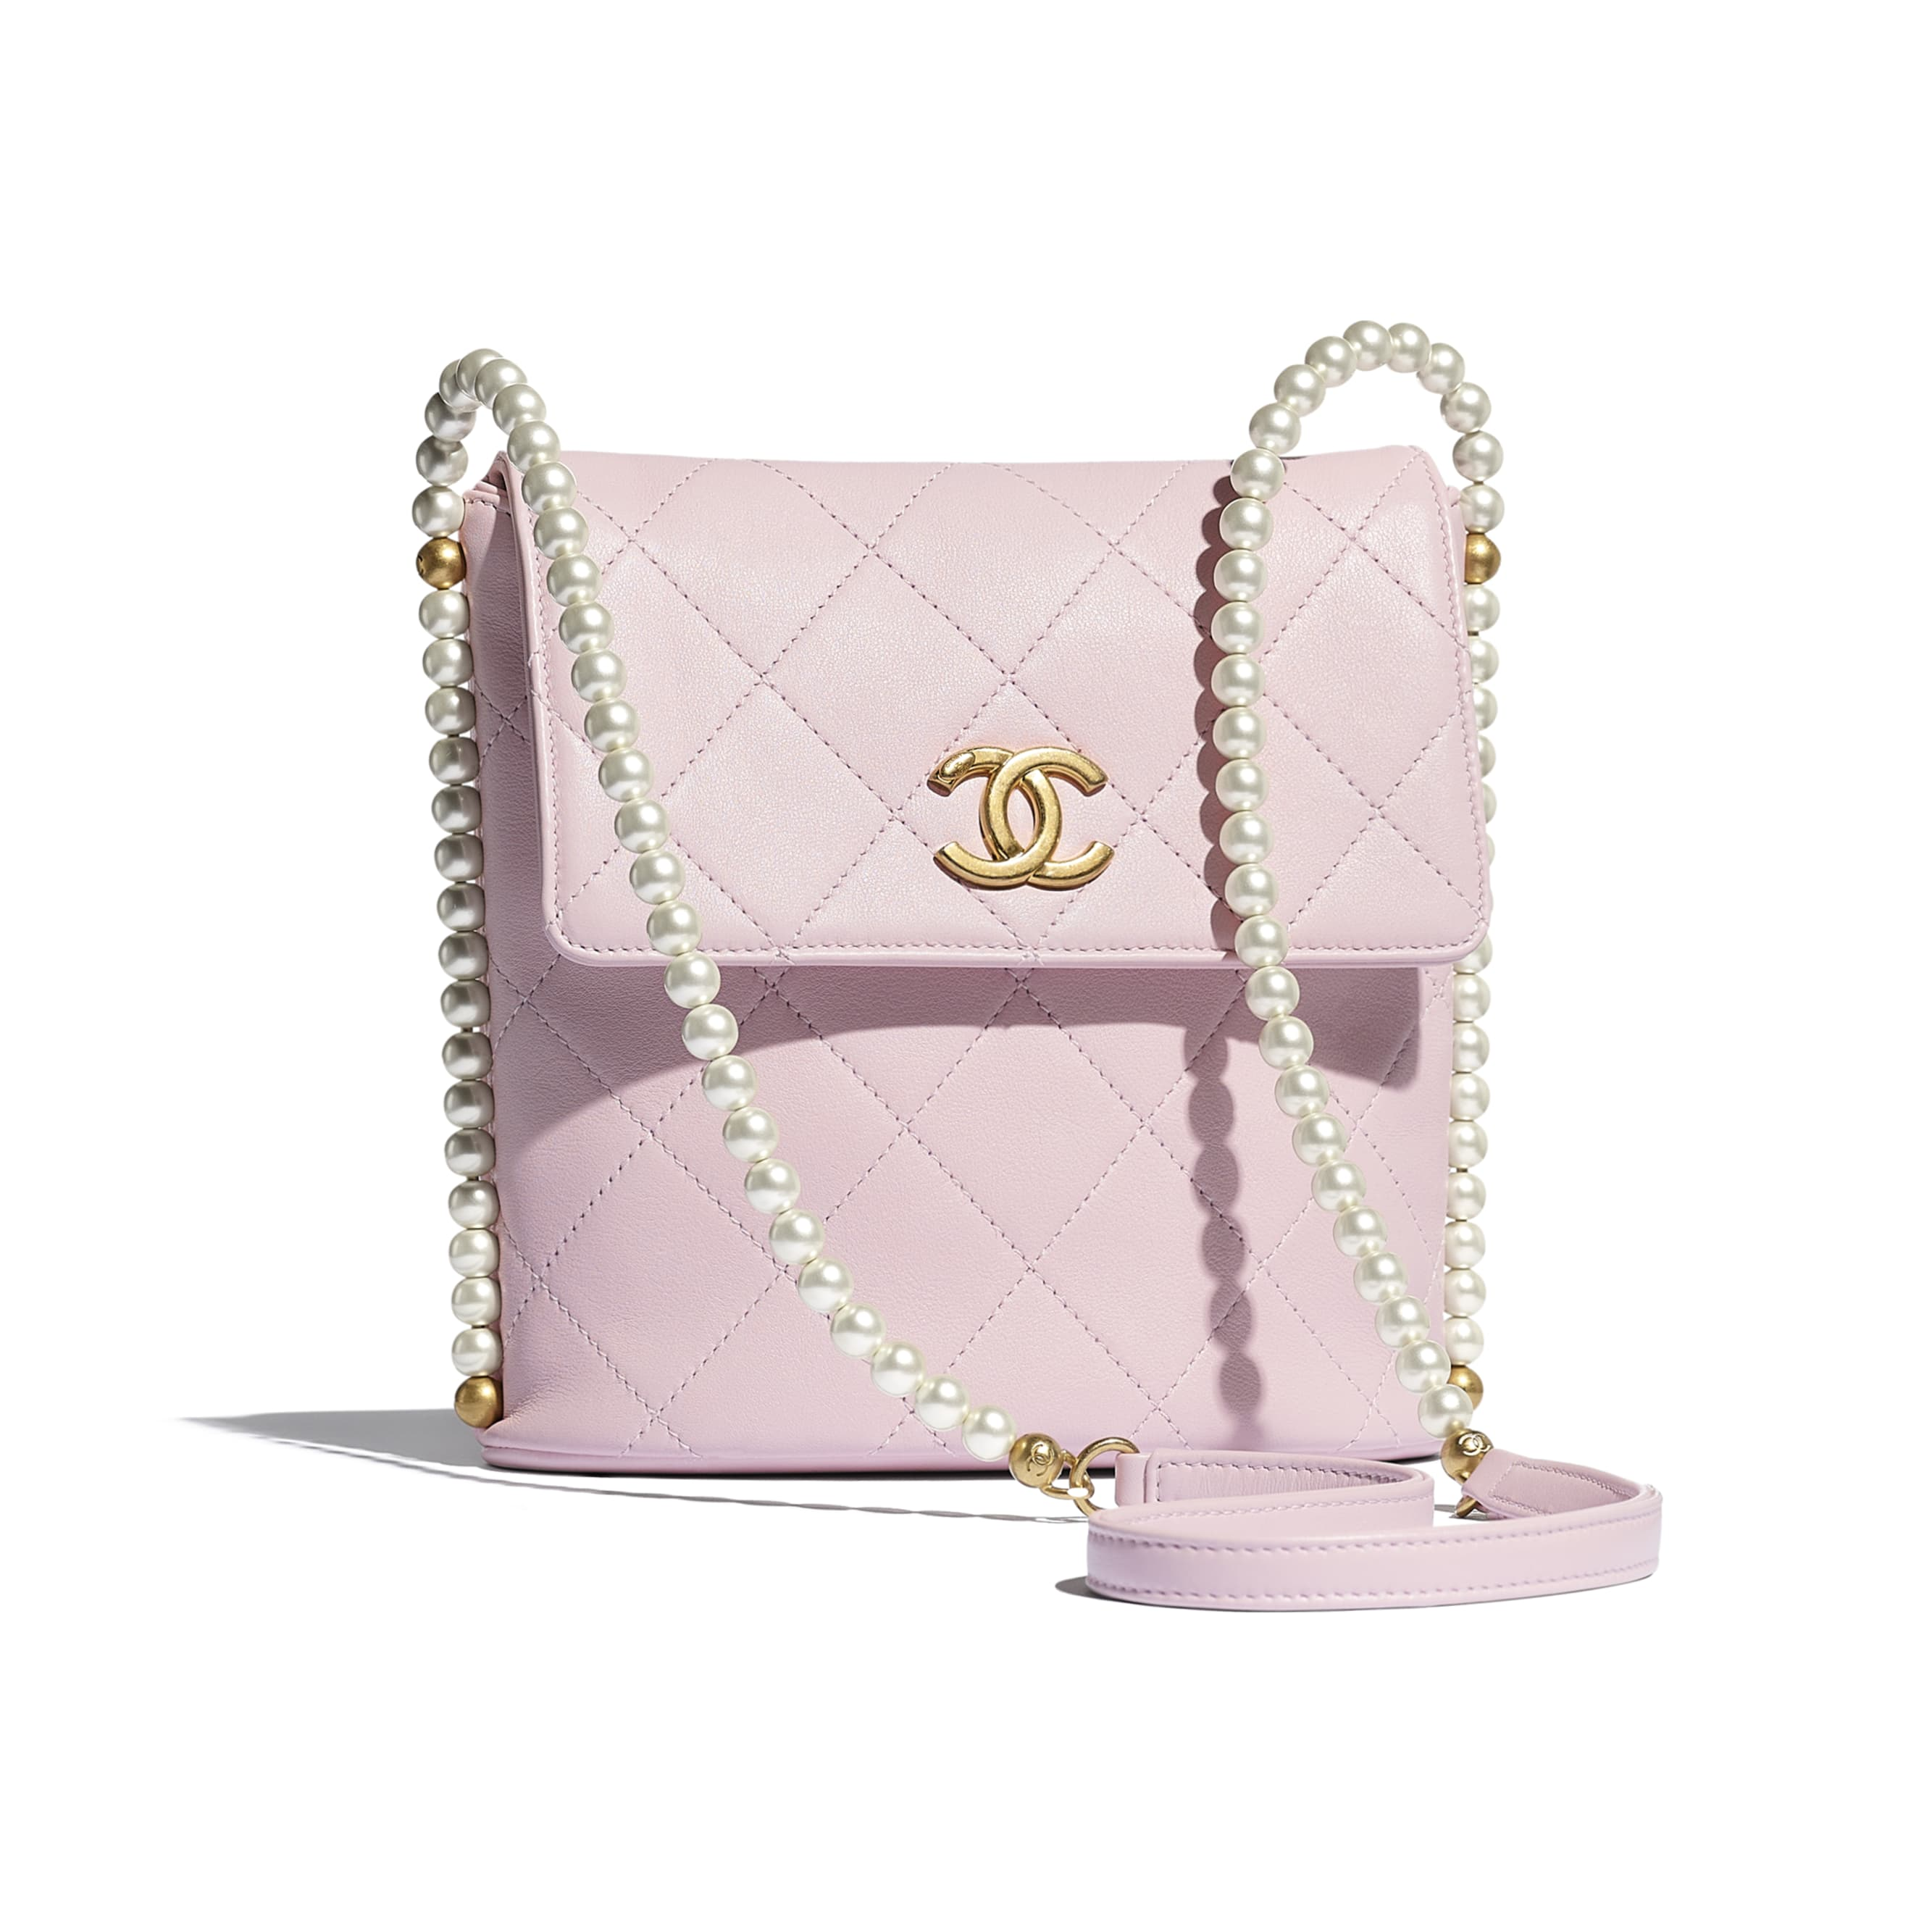 Small Hobo Bag - Light Pink - Calfskin, Imitation Pearls & Gold-Tone Metal - CHANEL - Default view - see standard sized version